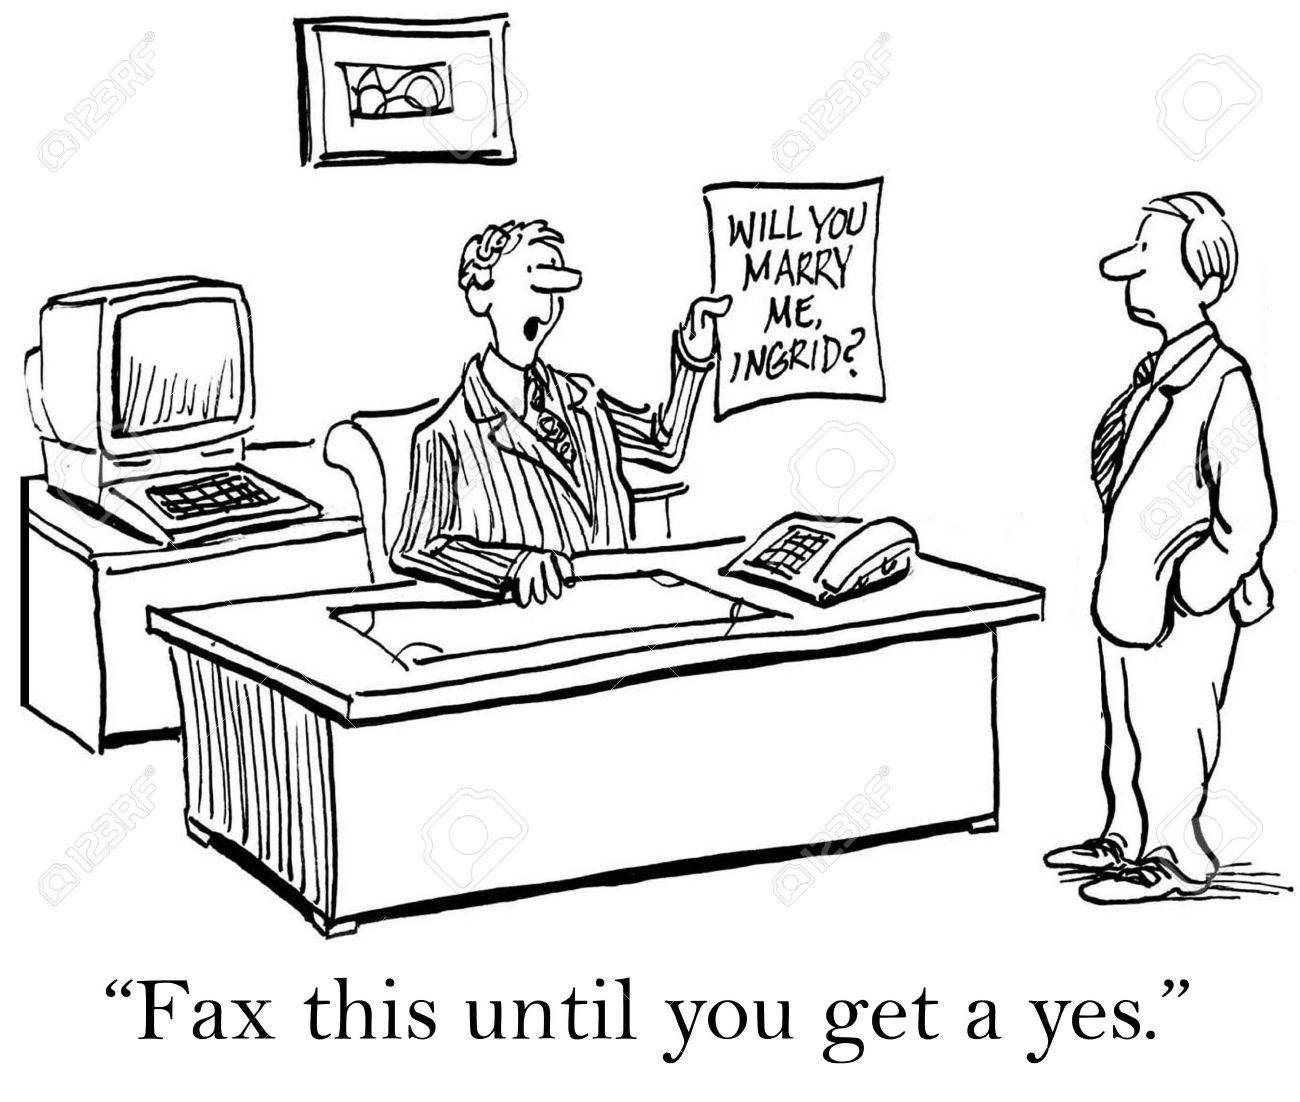 Fax this until you get a yes. Stock Photo - 16915824